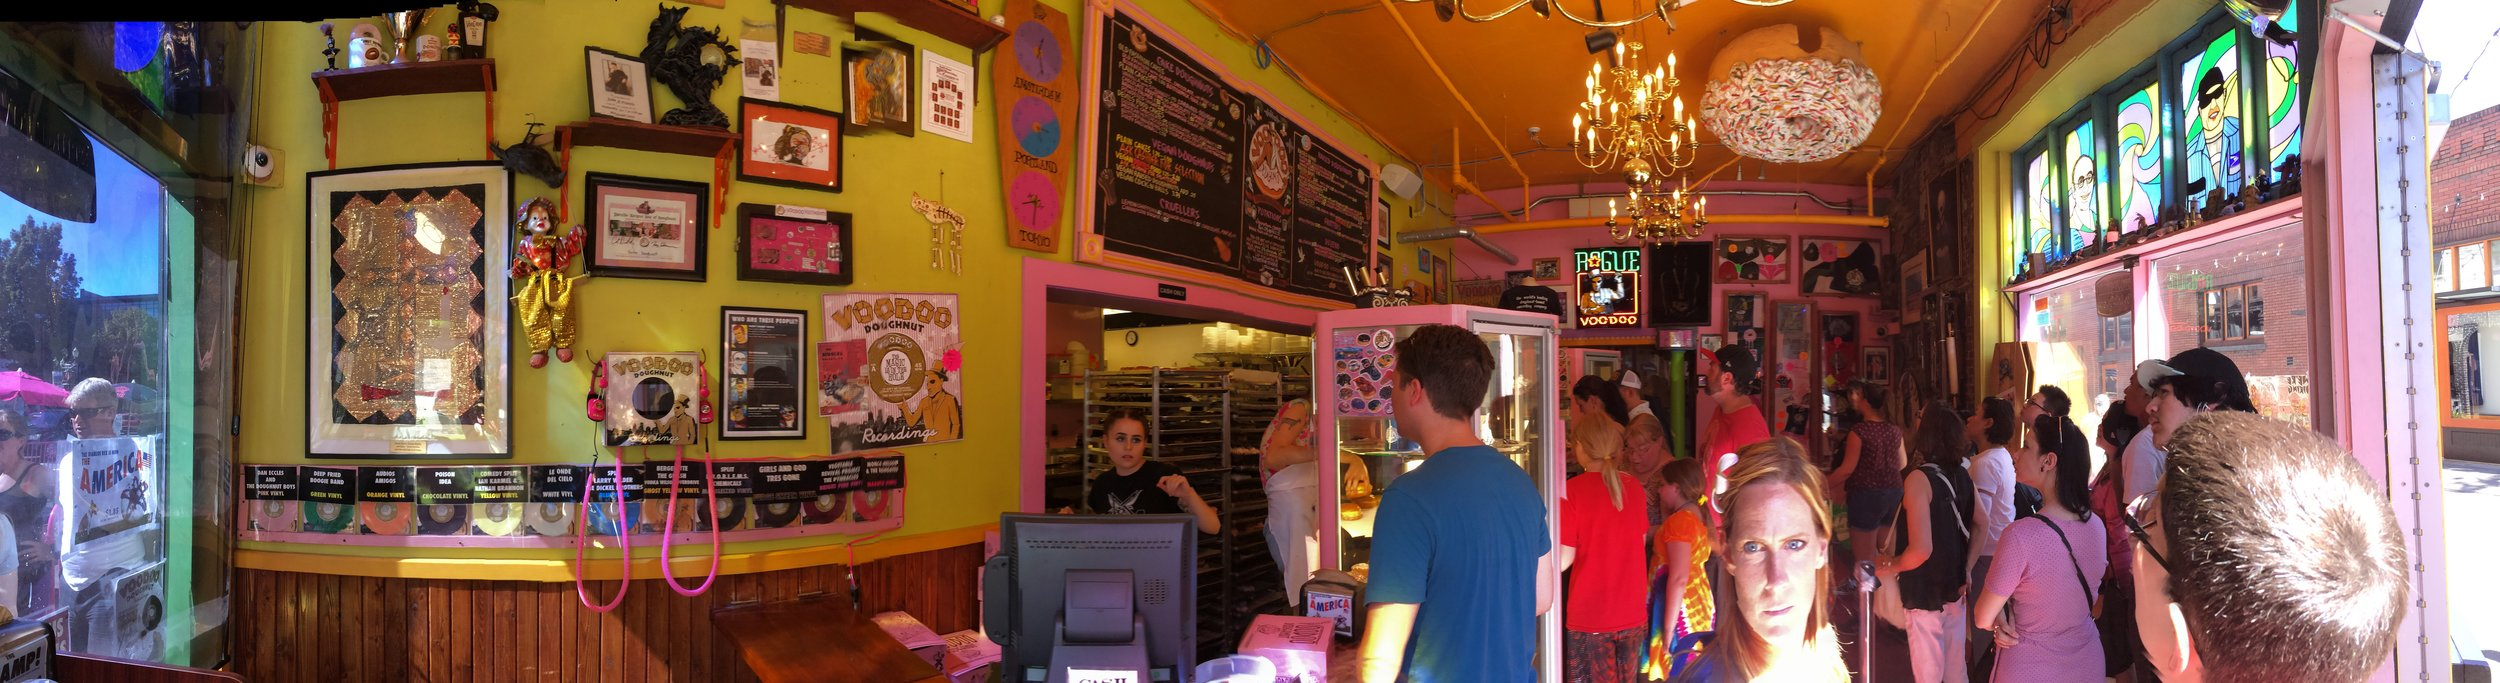 Voodoo Donuts... our destination, the thing that kept our kids going. Lol